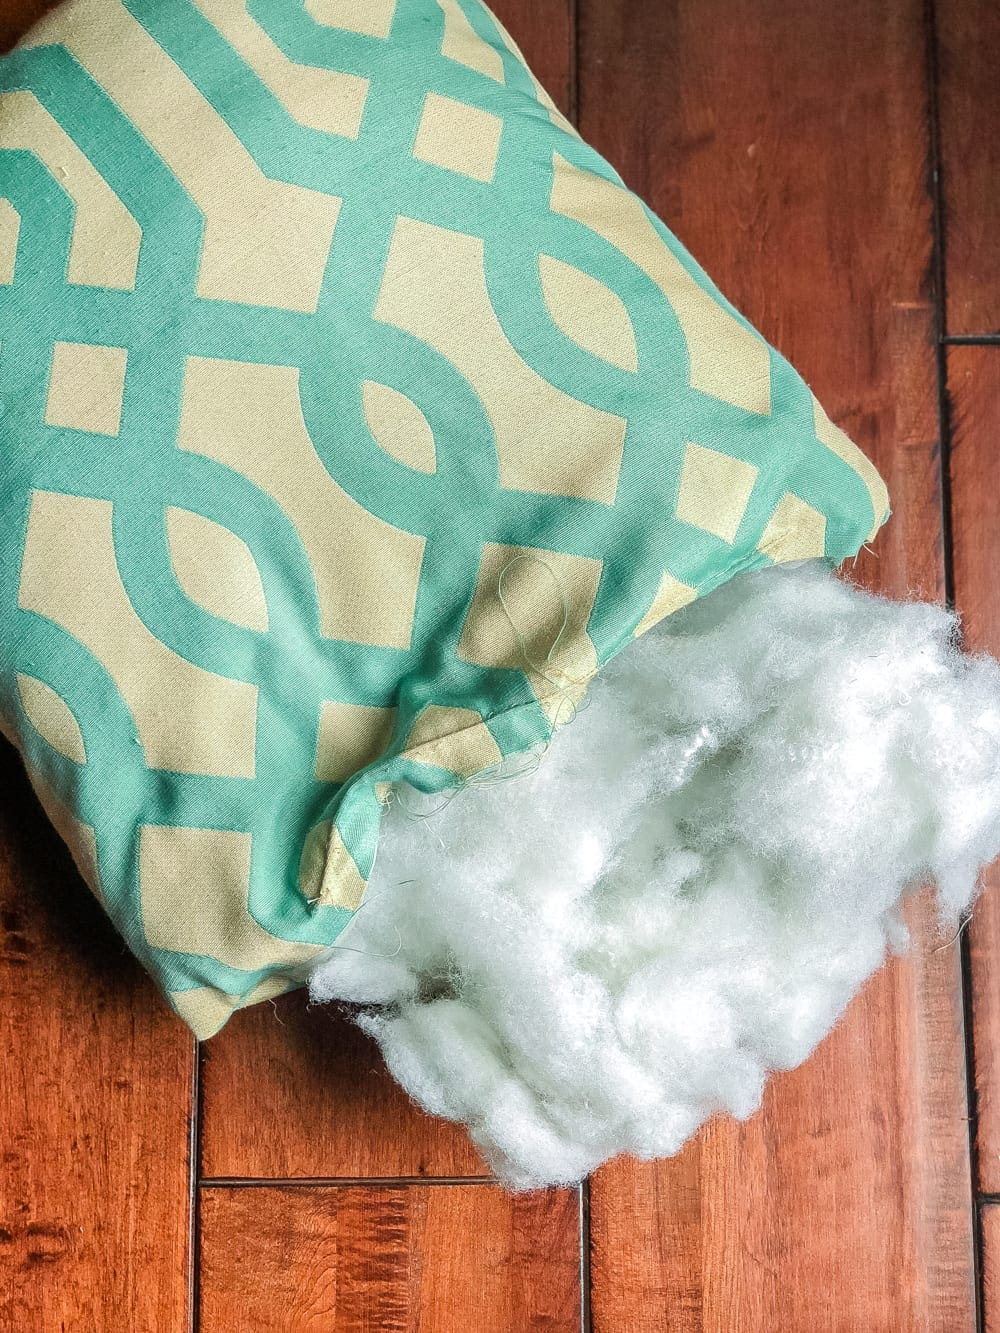 3 items you can repurpose into DIY no-sew throw pillows   Reuse polyfill from old pillows to make new ones and save money